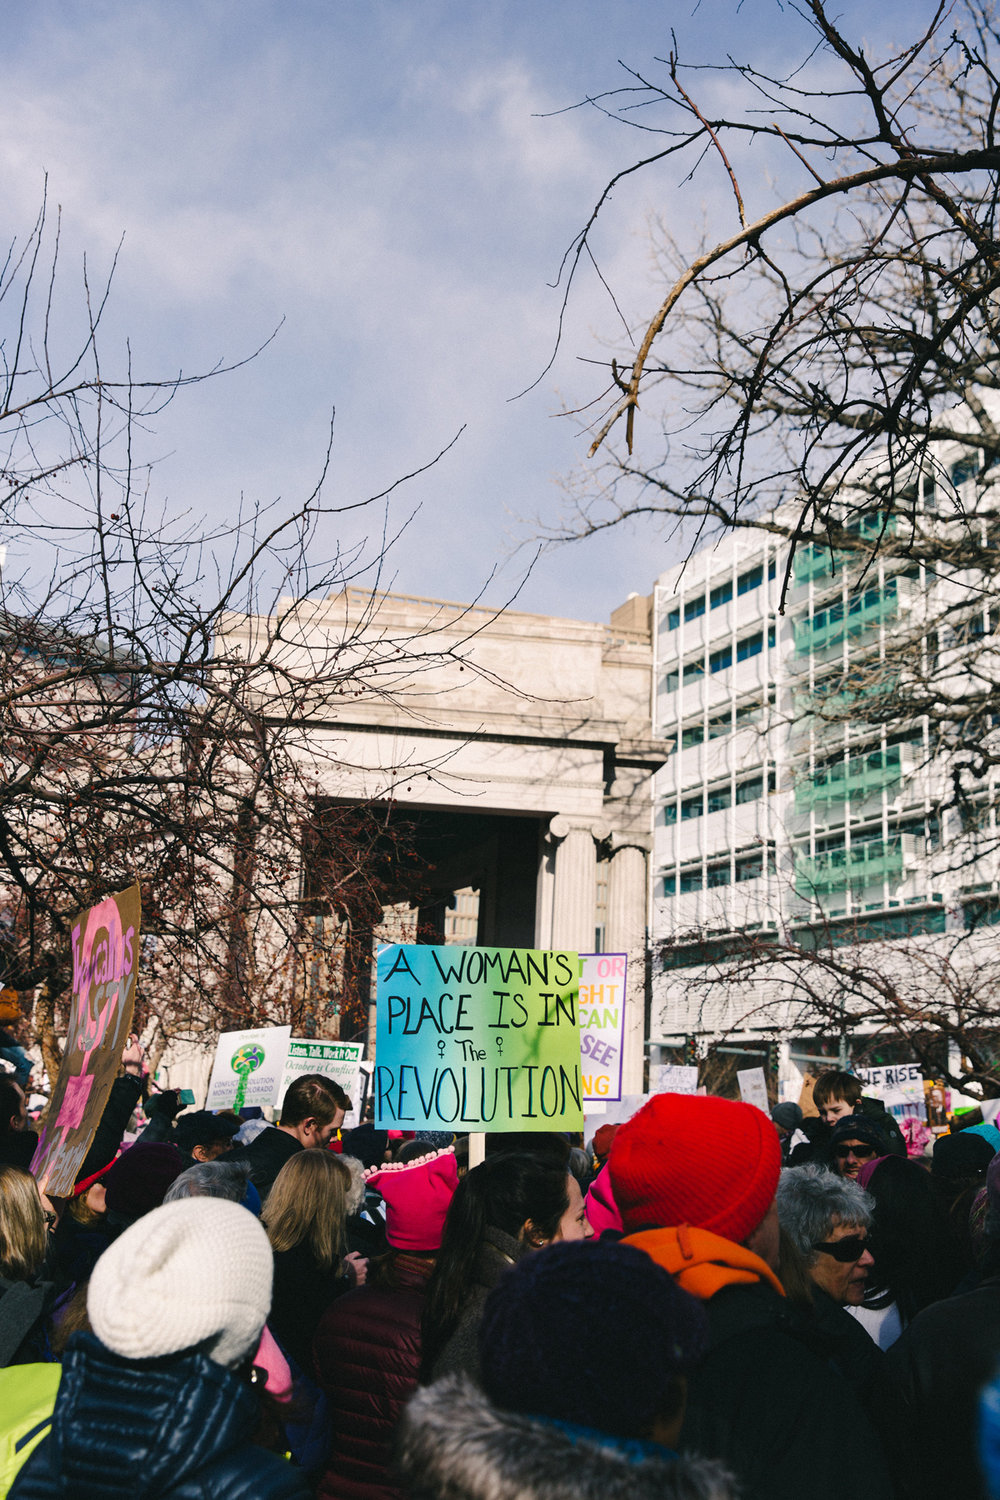 015-womens-march--denver--colorado--photo--love-trumps-hate--pussy-power--forget-me-not-media--rally.jpg